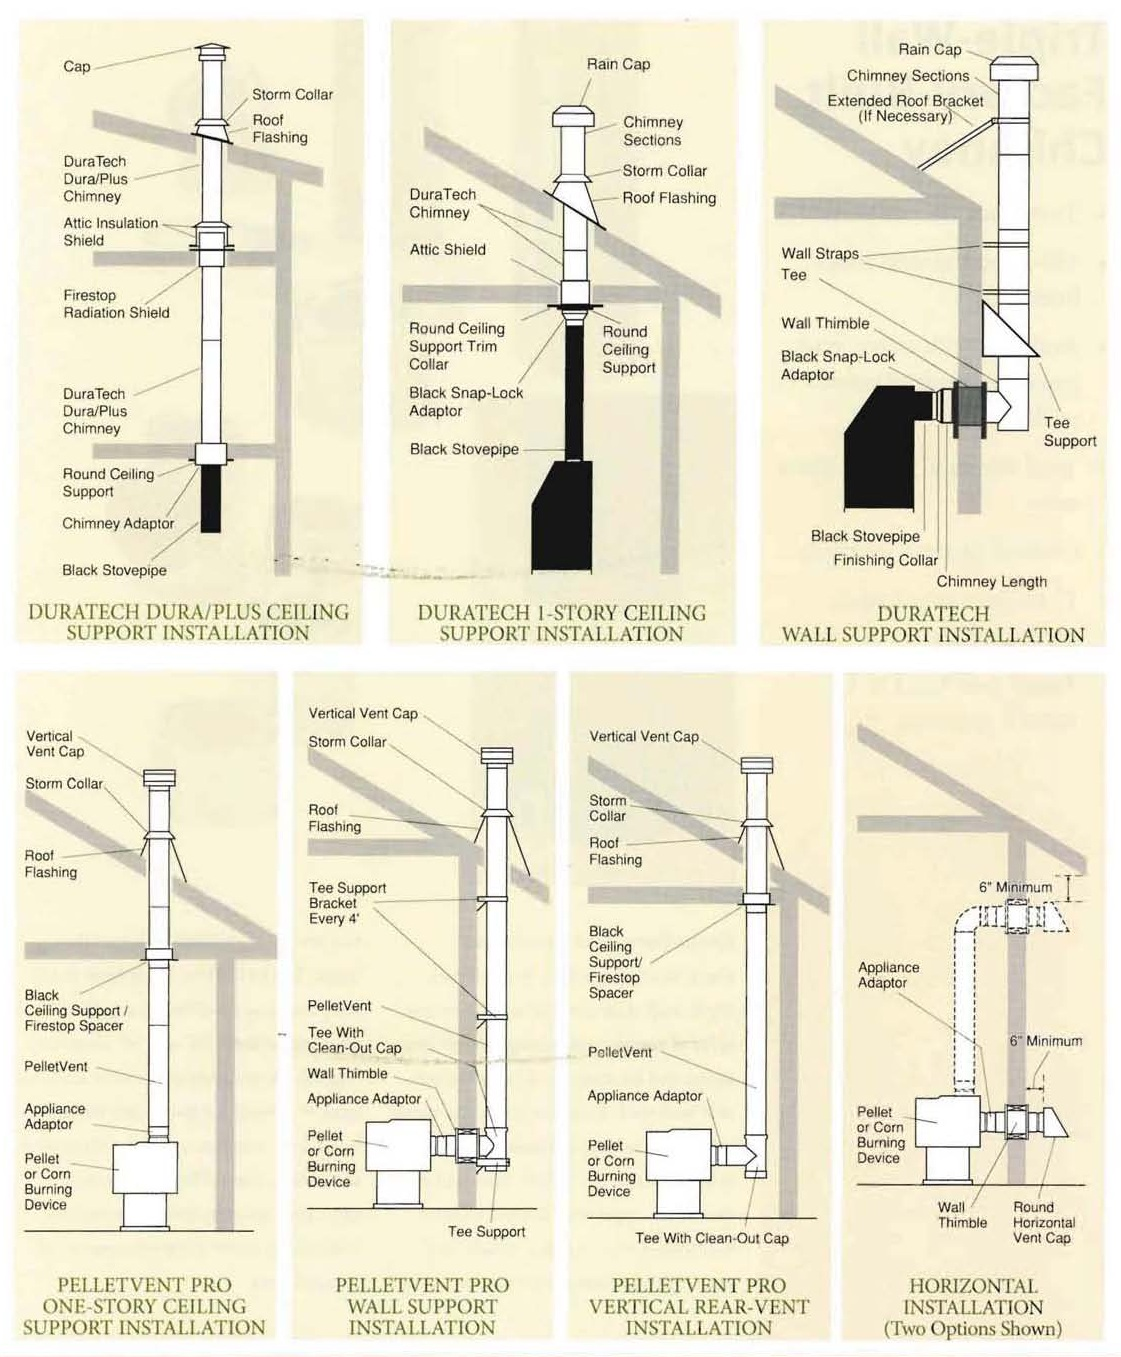 wood-20-20pellet-20chimney-20diagrams-page-2-20crop-1-.jpg